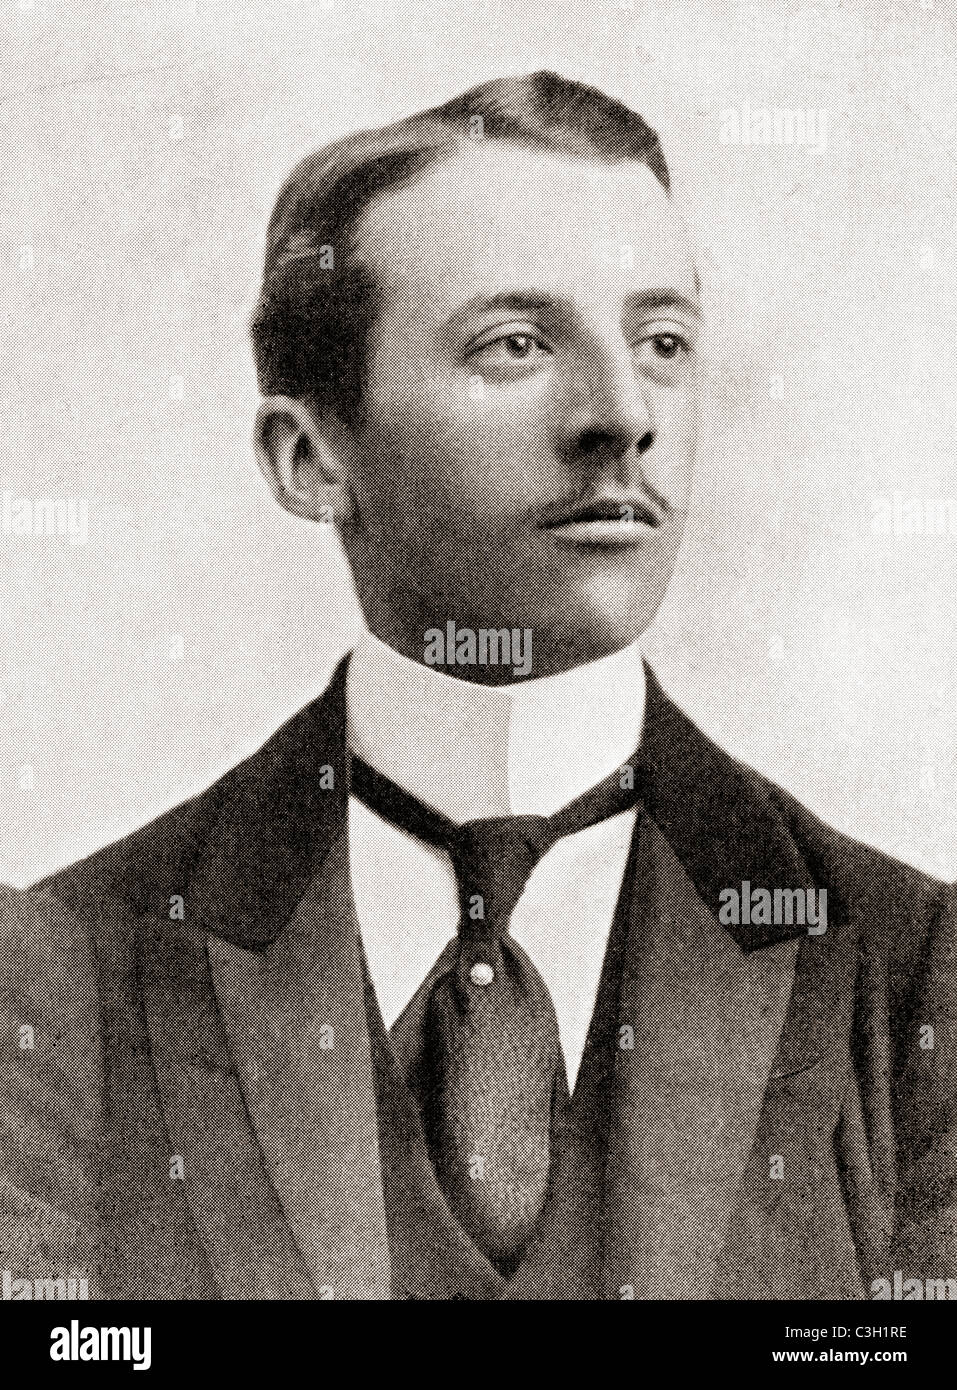 William 'Billy' Charles de Meuron Wentworth-FitzWilliam, 7th Earl FitzWilliam, 1872 - 1943. British aristocrat. - Stock Image